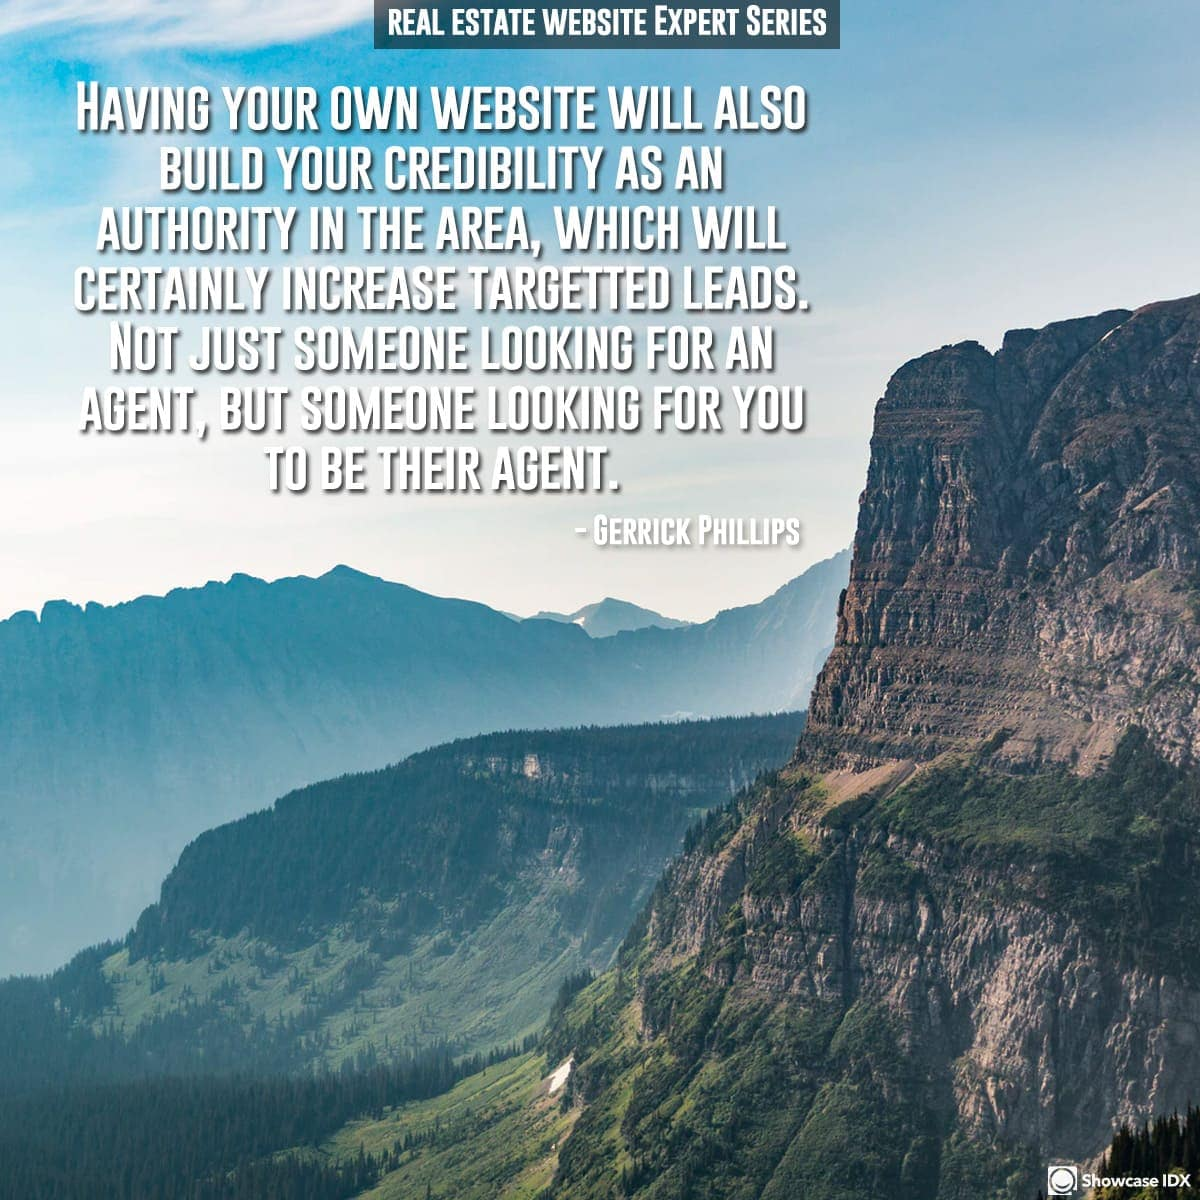 Having your own website will also build your credibility as an authority in the area, which will certainly increase targetted leads. Not just someone looking for an agent, but someone looking for you to be their agent.